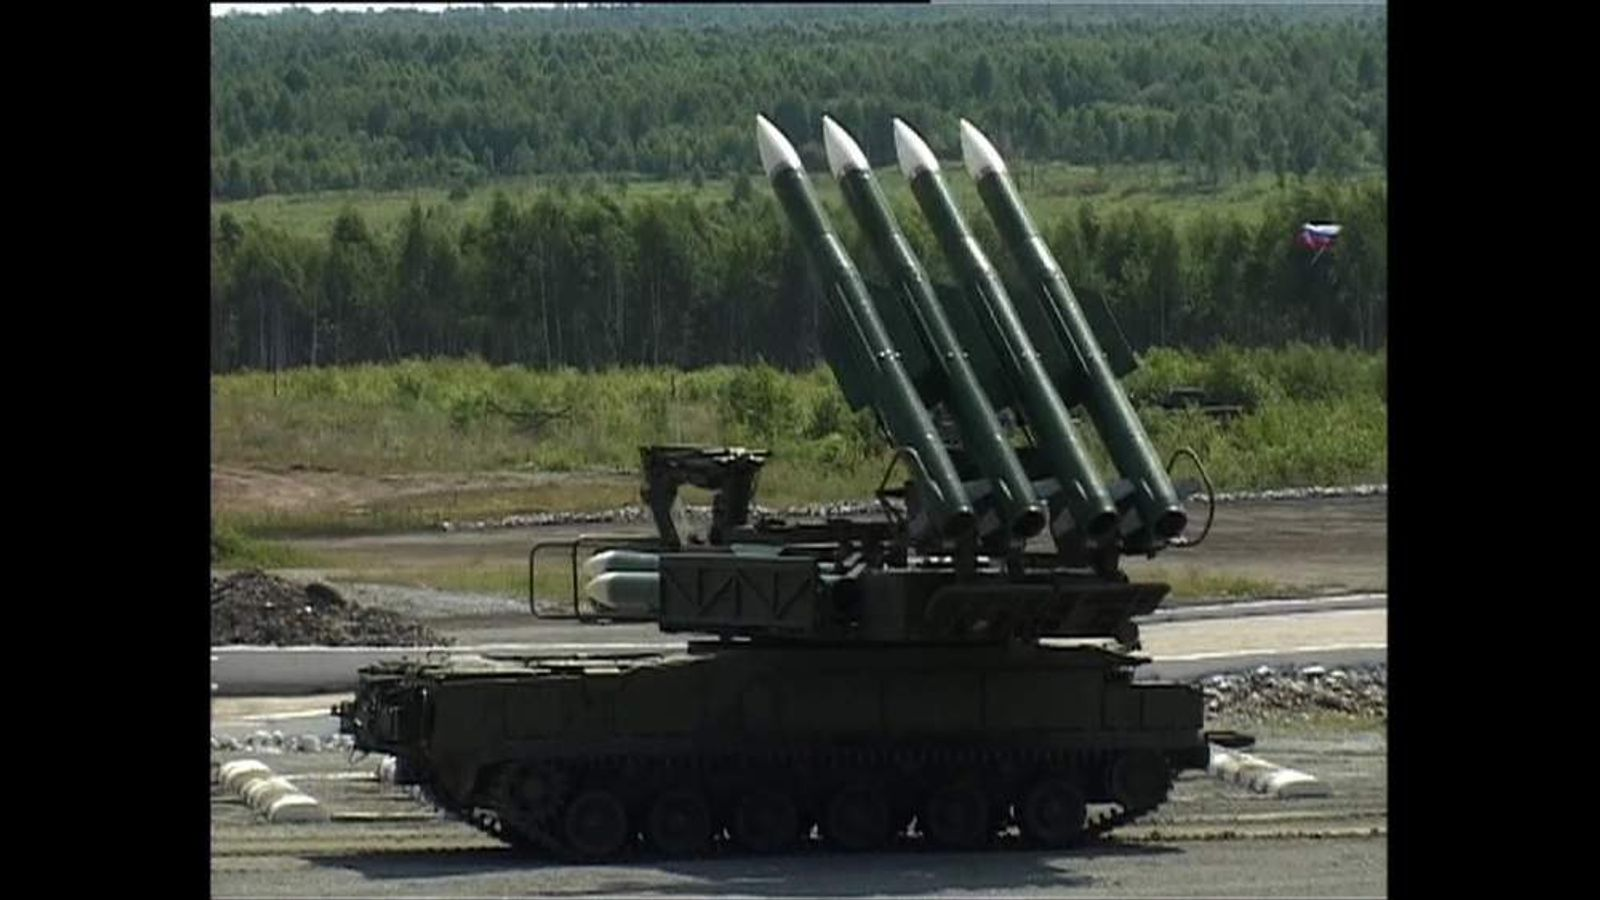 Russian BUK Missile systems